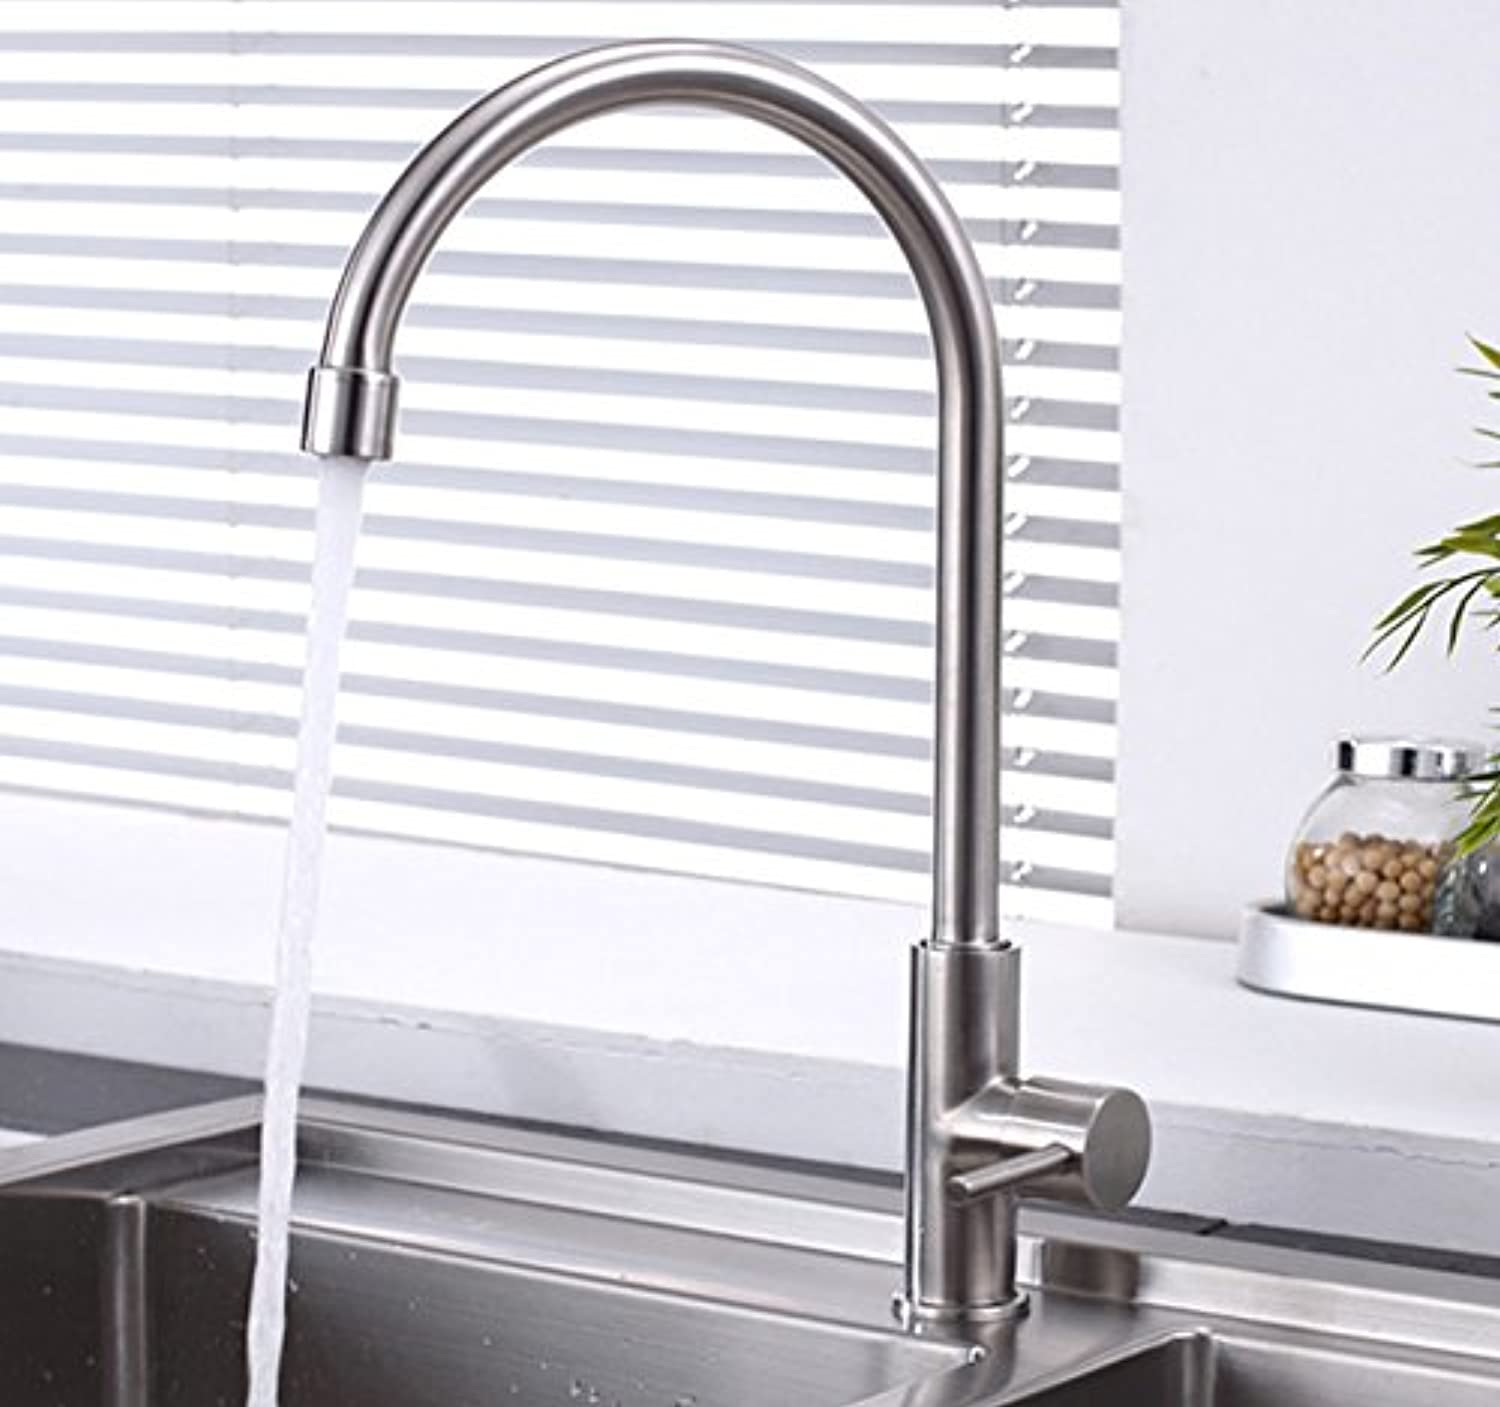 LHbox Basin Mixer Tap Bathroom Sink Faucet Hot and cold basin taps, bath single in stainless steel mixing Faucet